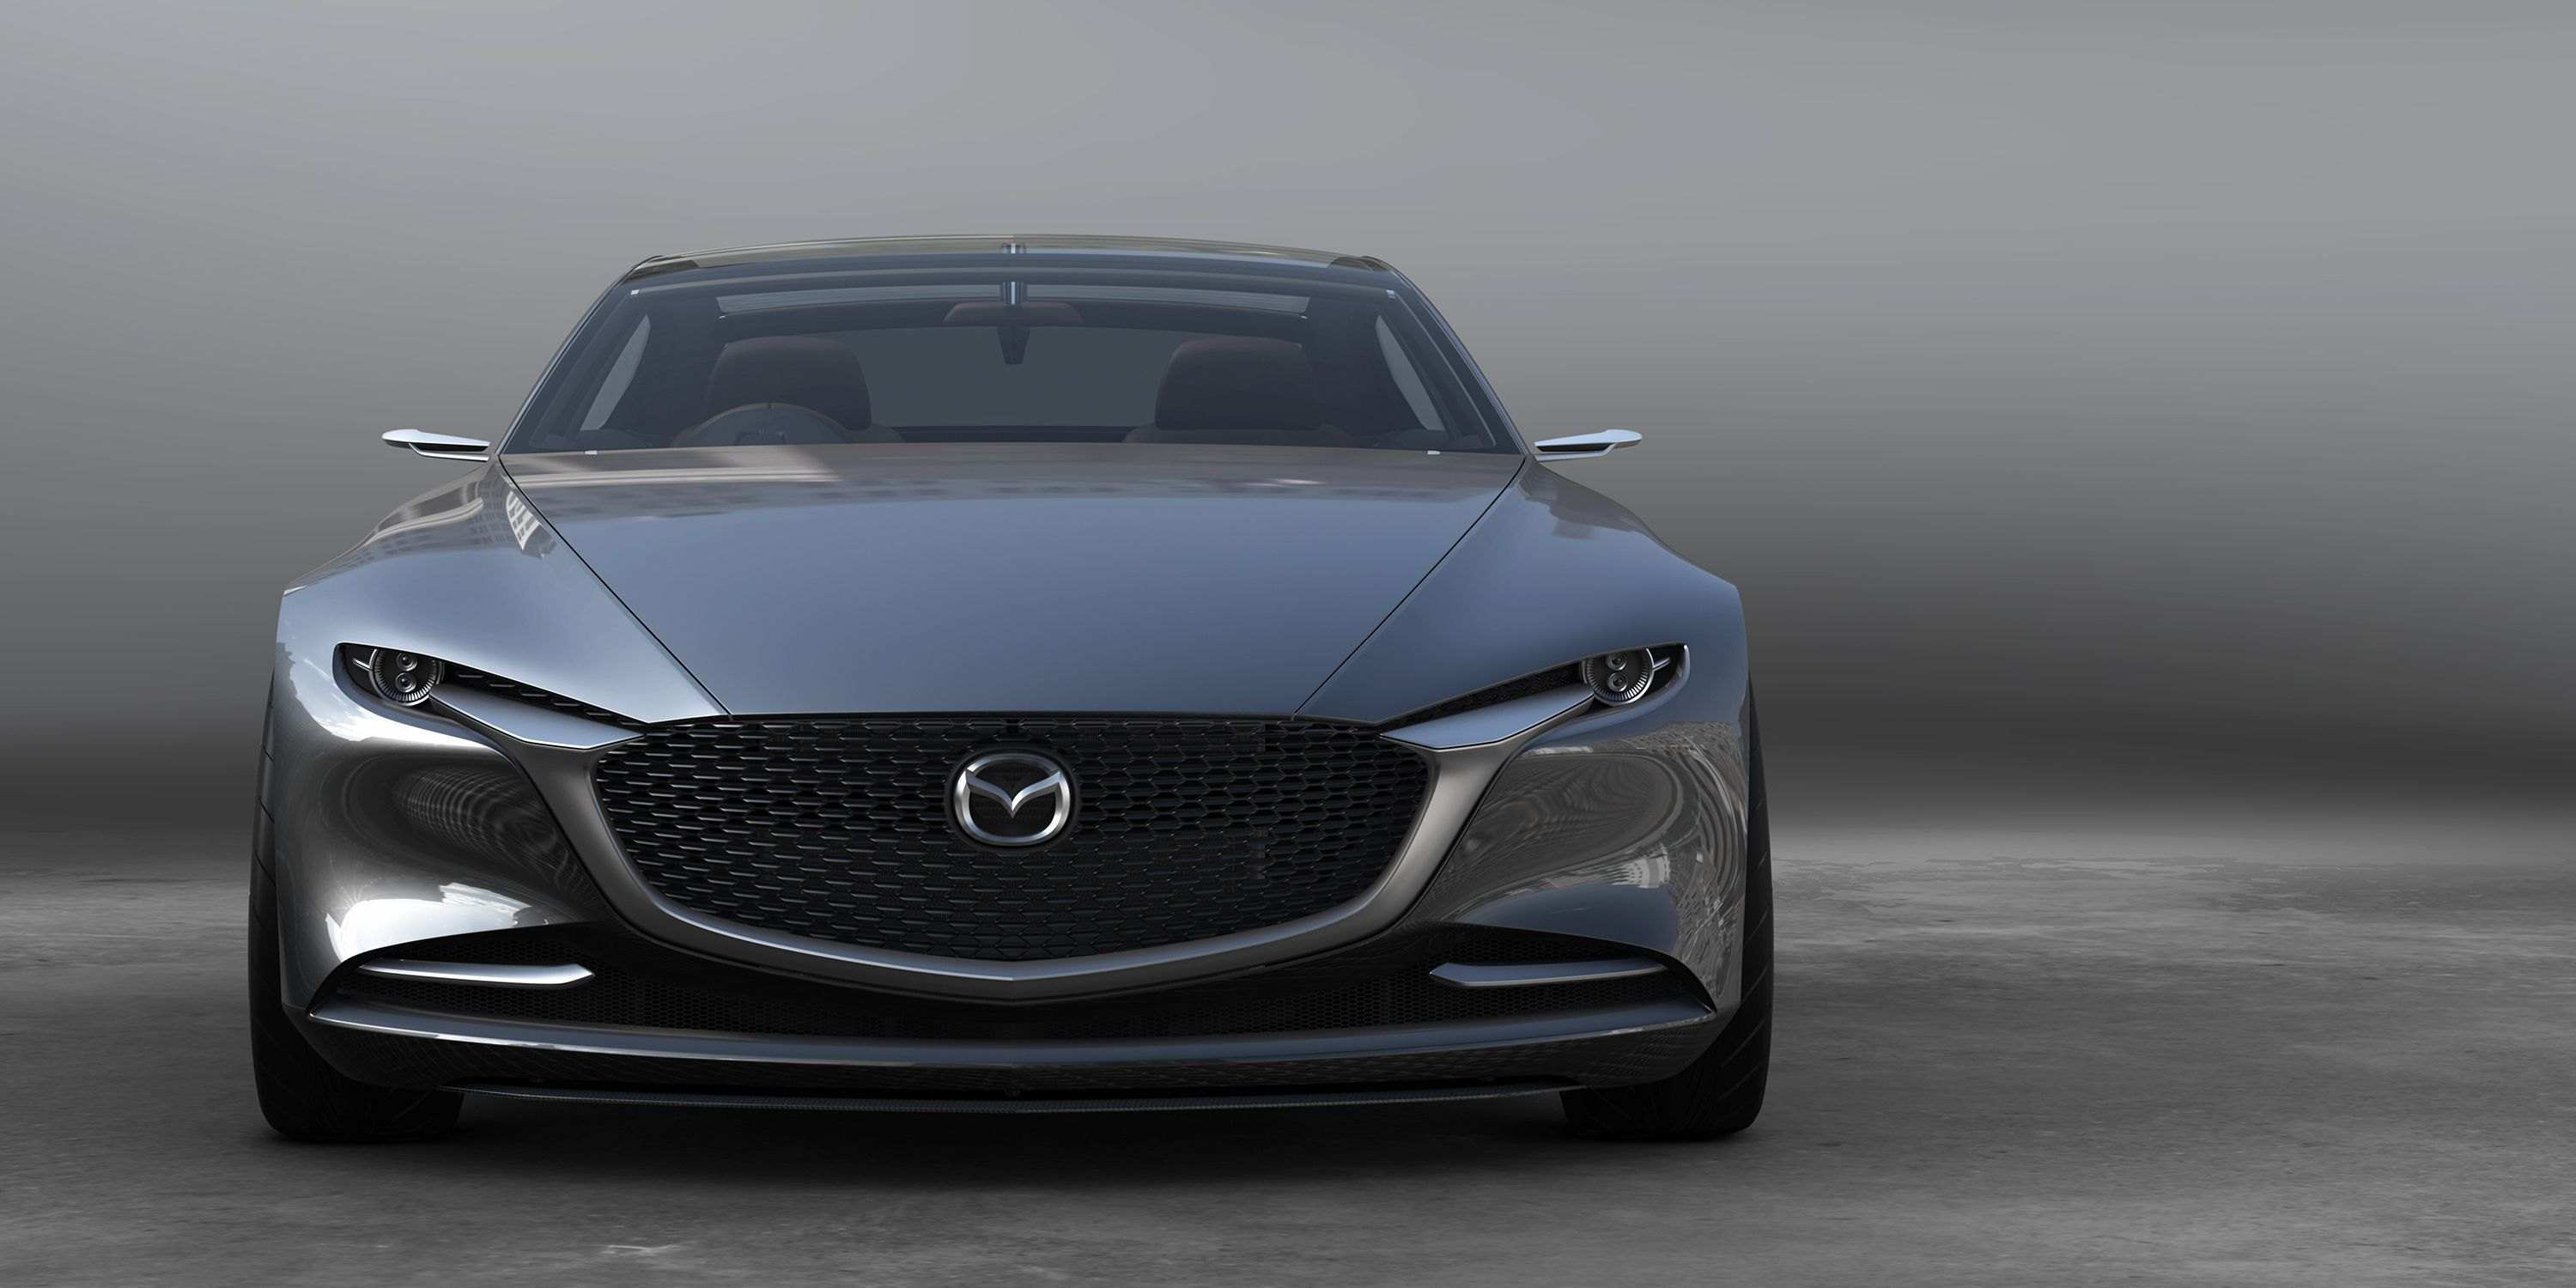 49 The Best Mazda Hybrid 2020 Concept And Review